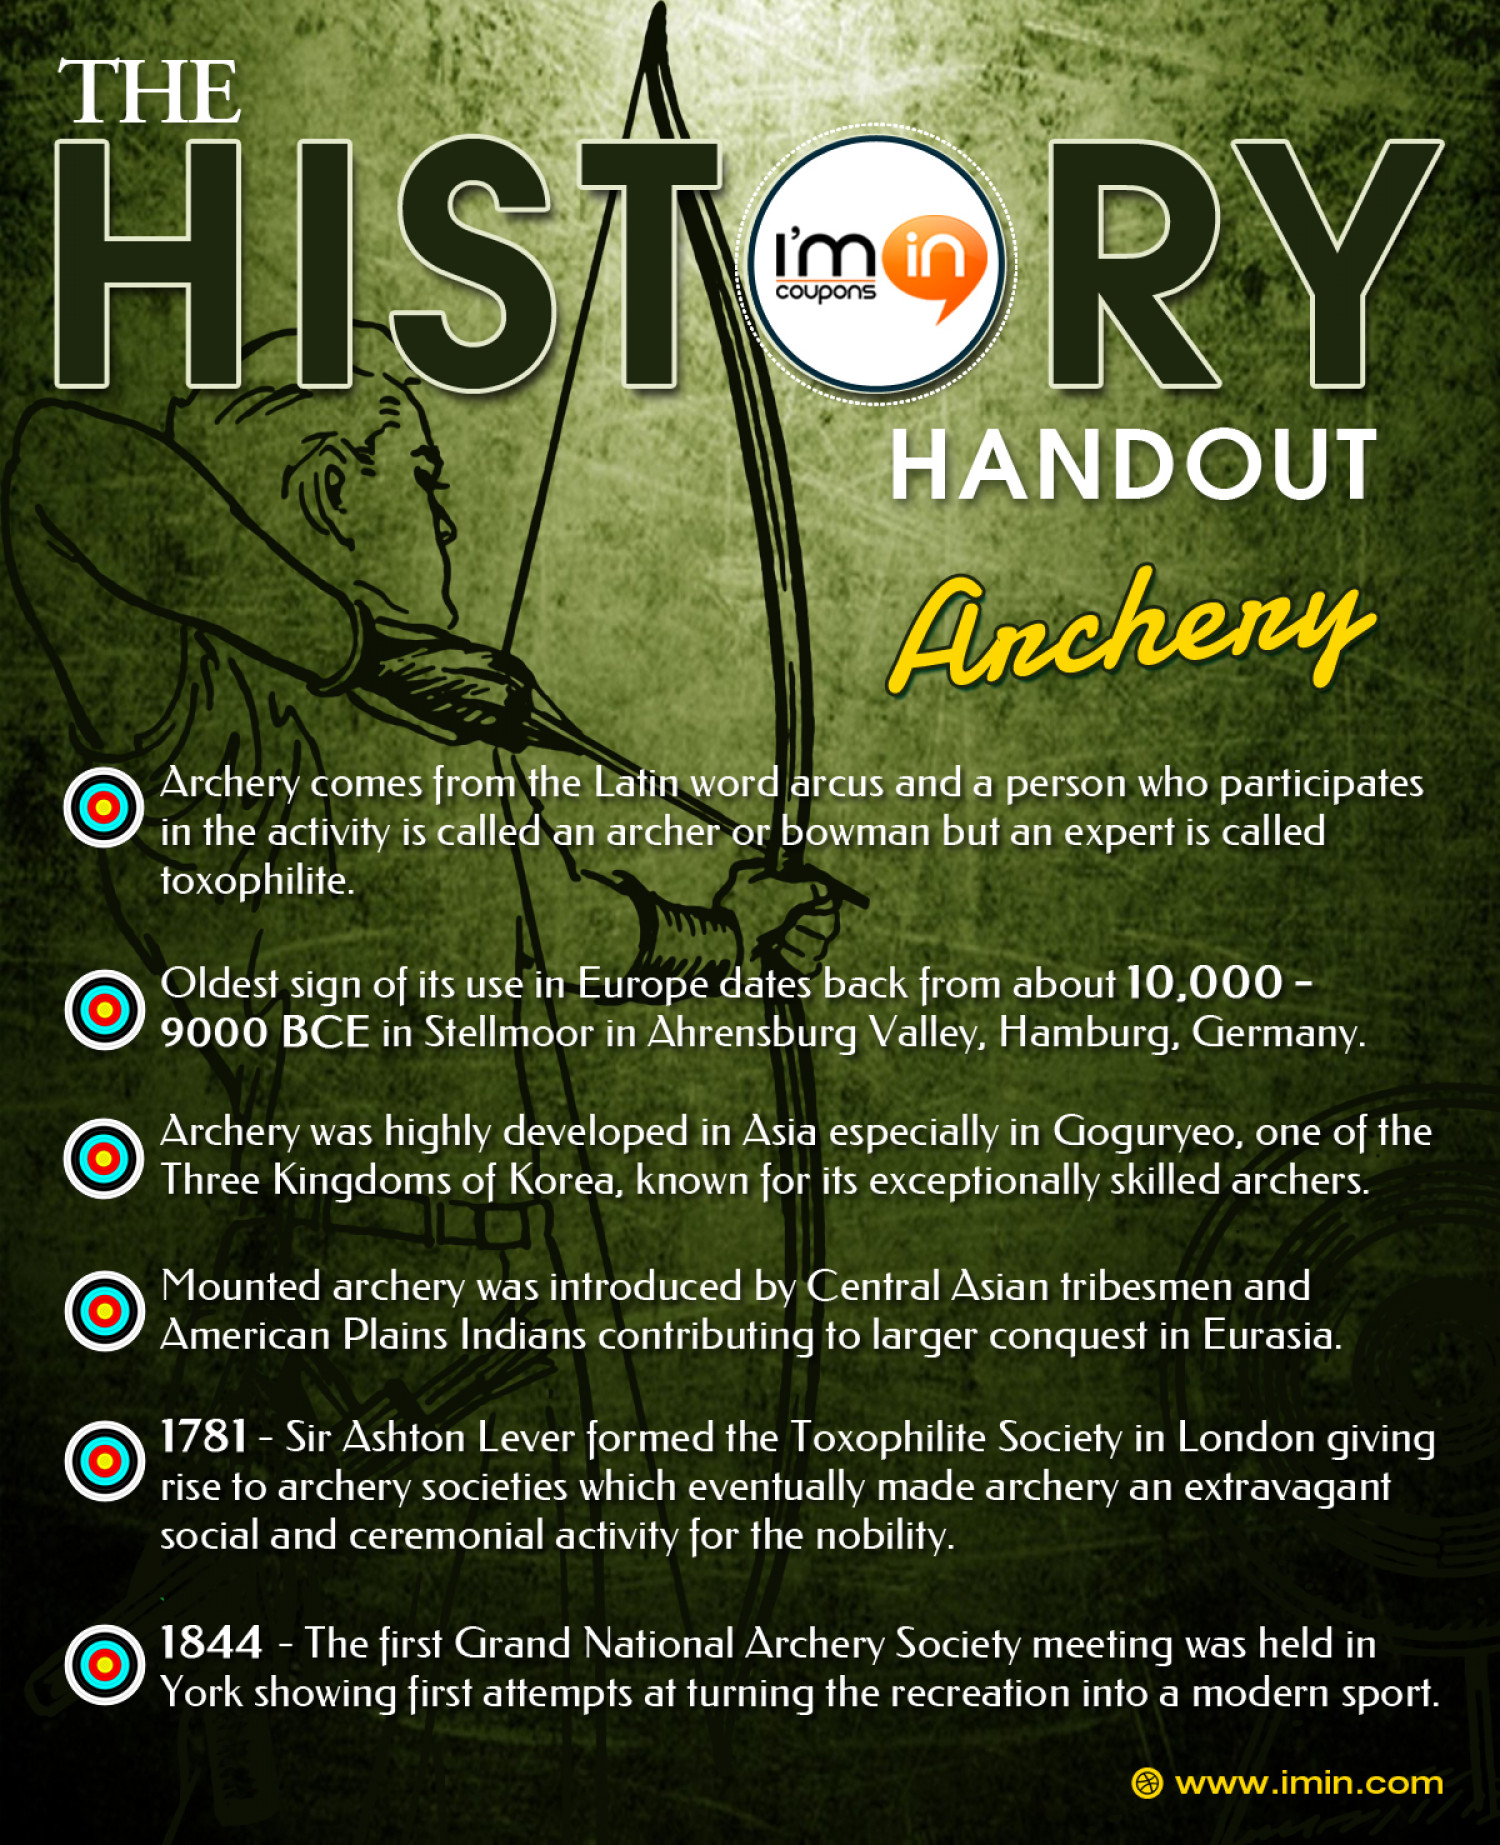 The History Handout - Archery Infographic